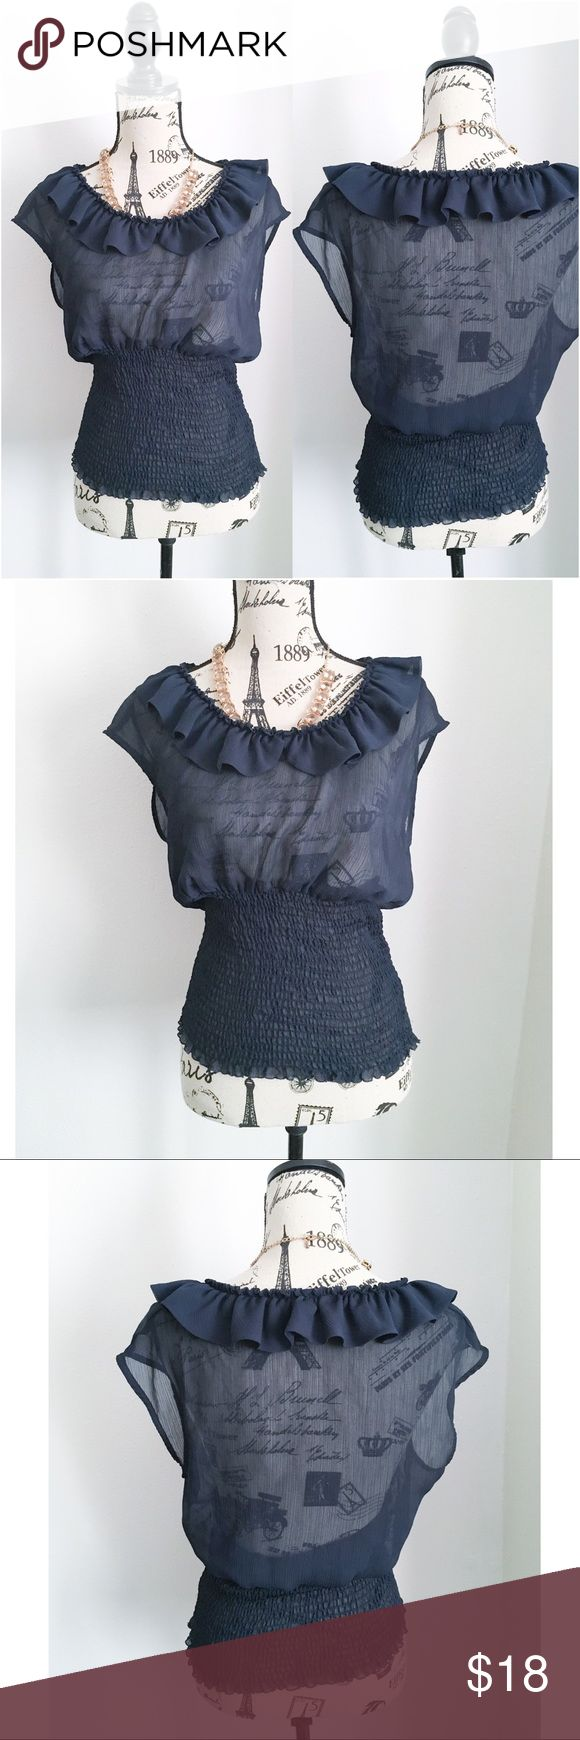 """Navy Blue Semi Sheer Top ✦   ✦{I am not a professional photographer, actual color of item may vary ➾slightly from pics}  ❥chest:20"""" ❥waist:14""""(stretchy grid) ❥length:24"""" •all measurements taken flat in inches  ➳material/care:polyester/machine wash  ➳fit:in my opinion slightly closer to medium ➳condition:gently used   ✦20% off bundles of 3/more items ✦No Trades  ✦NO HOLDS ✦No transactions outside Poshmark  ✦No lowball offers/sales are final Allen B. By Allen Schwartz Tops Blouses"""